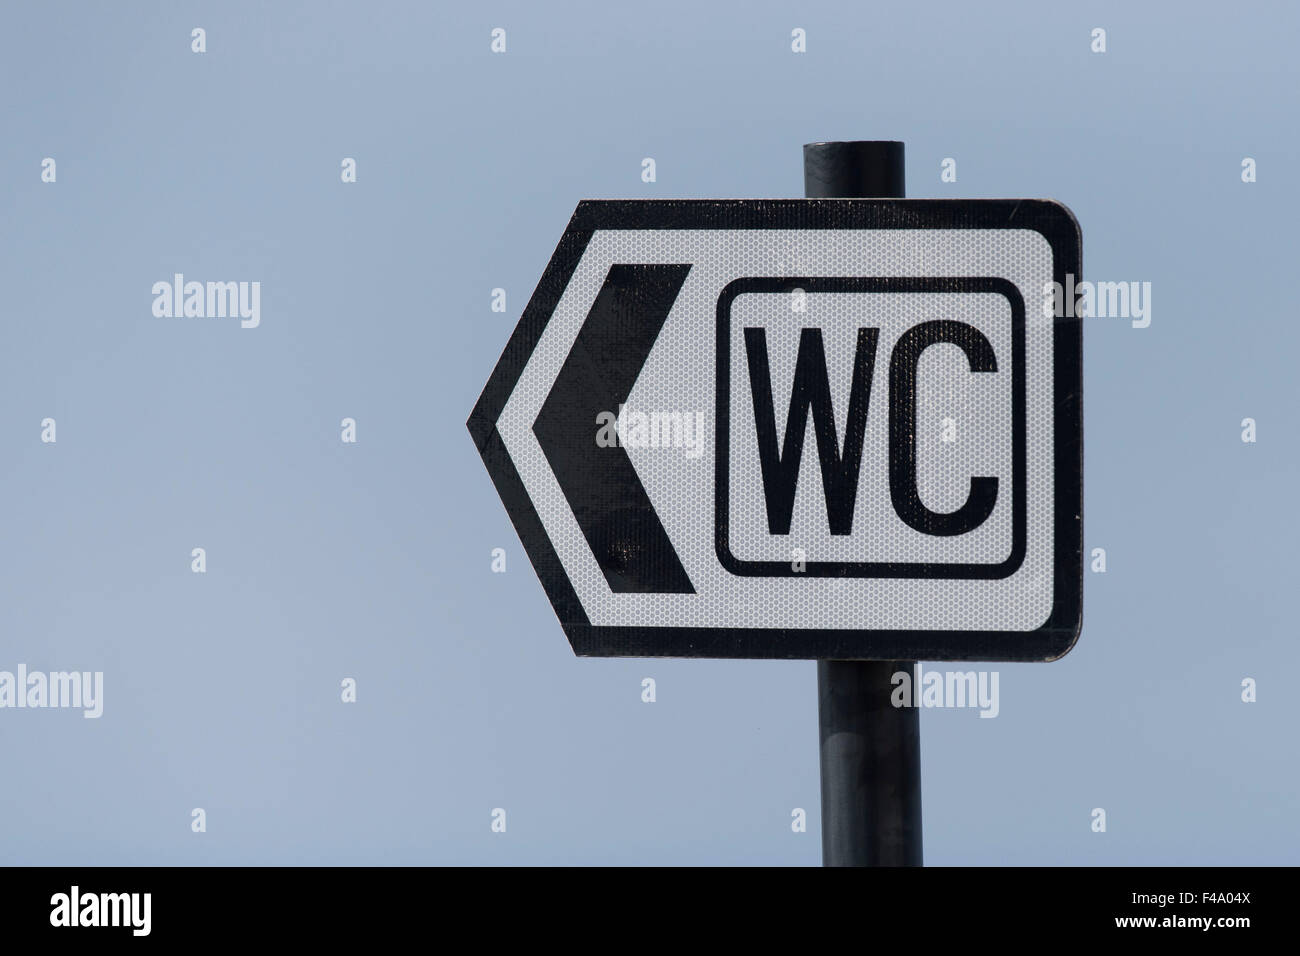 A sign directing to a WC (water closet) or toilet. - Stock Image